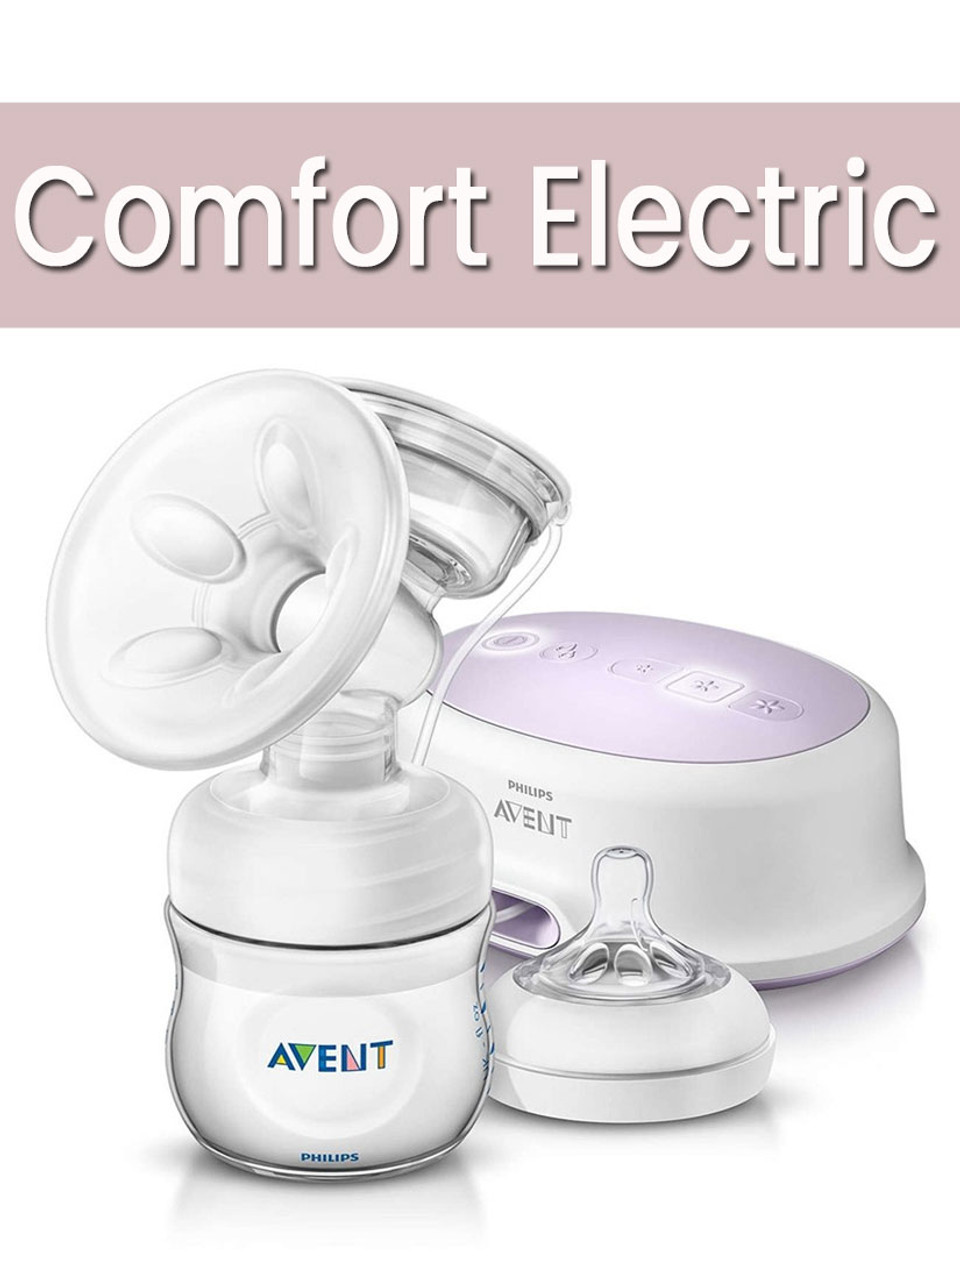 Philips Avent Comfort Electric Breast Pump Spare Parts Order